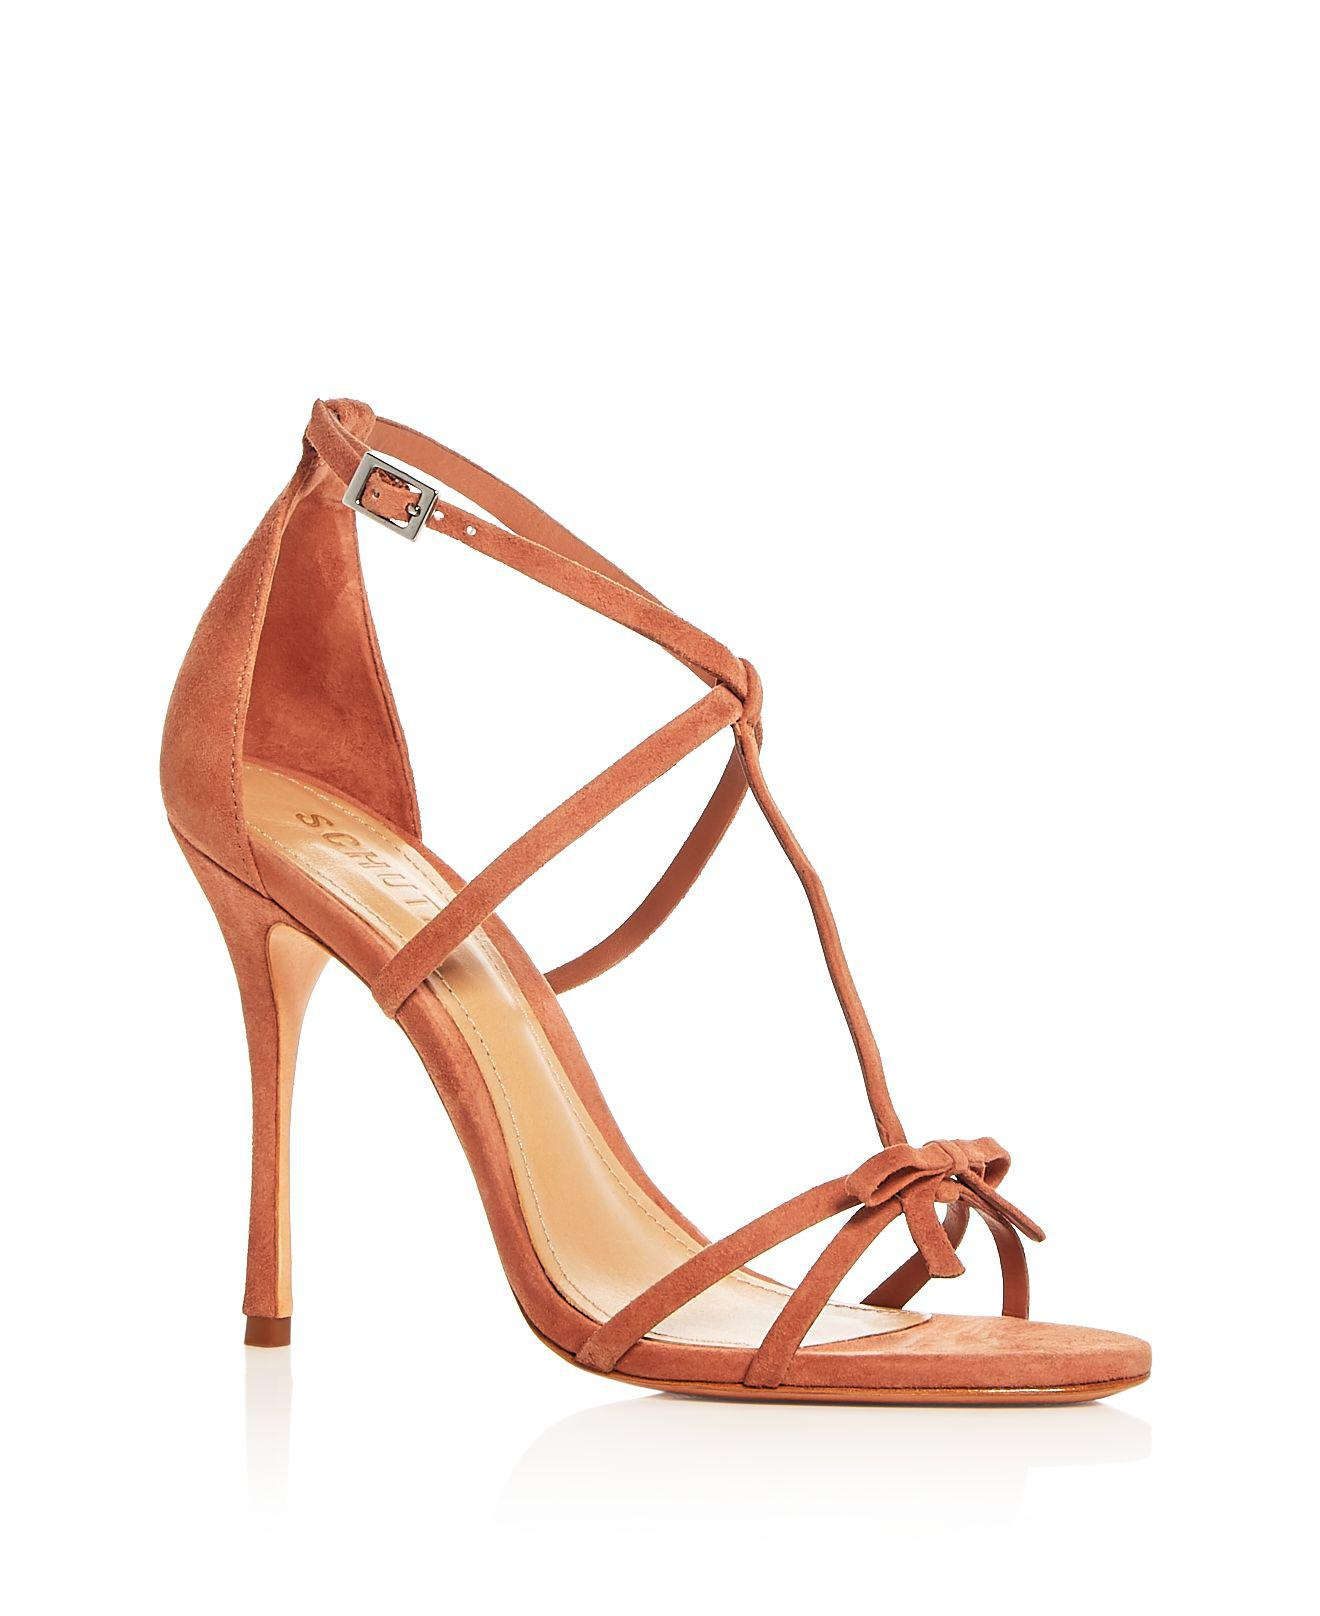 b5fa103b71a Gallery. Previously sold at  Bloomingdale s · Women s Three Strap Sandals  ...